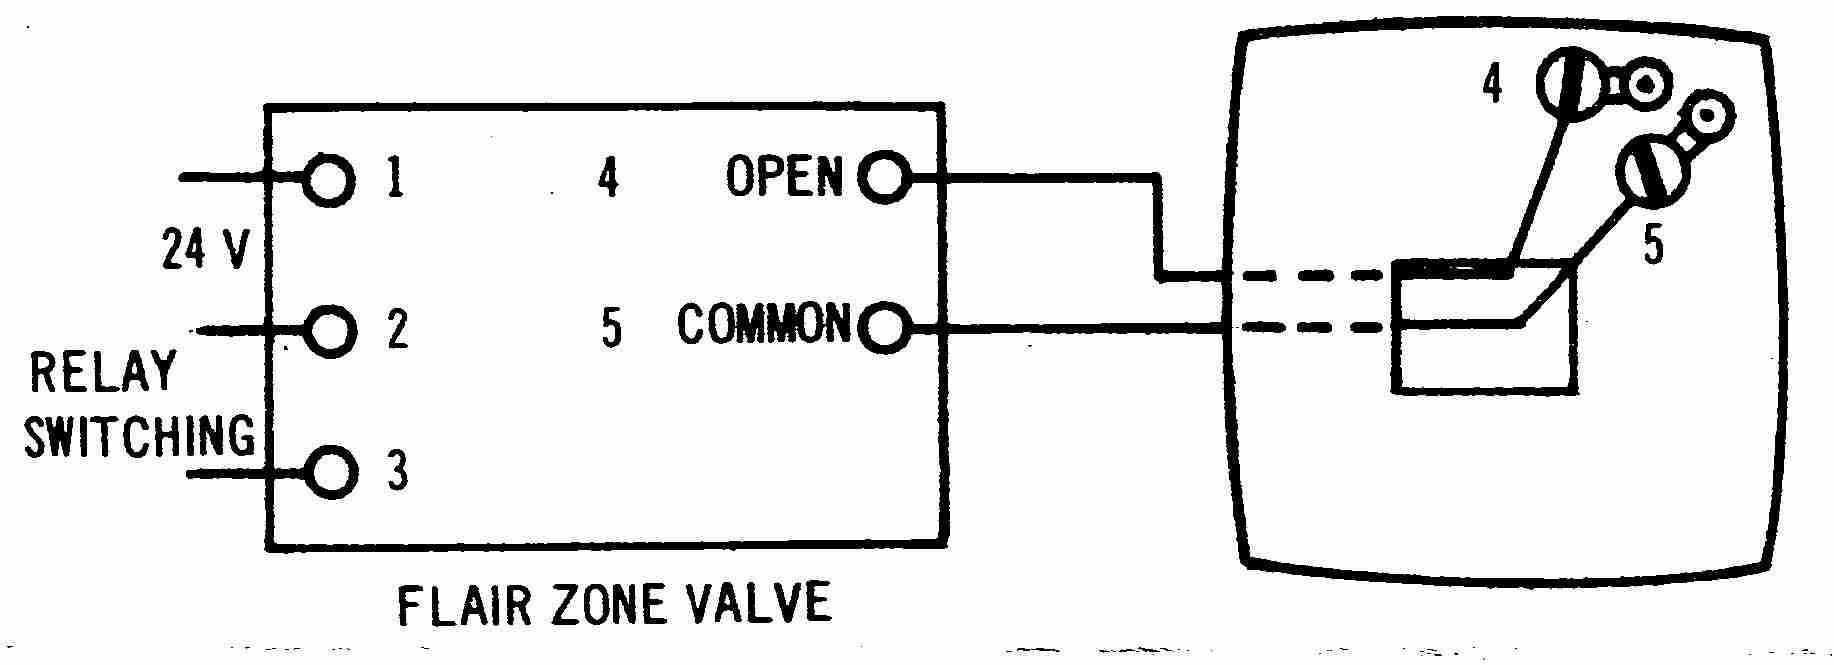 Honeywell Rth221b Wiring Diagram 2wire Room Thermostat Diagrams For Hvac Systems Flair 2 Wire Thermosat